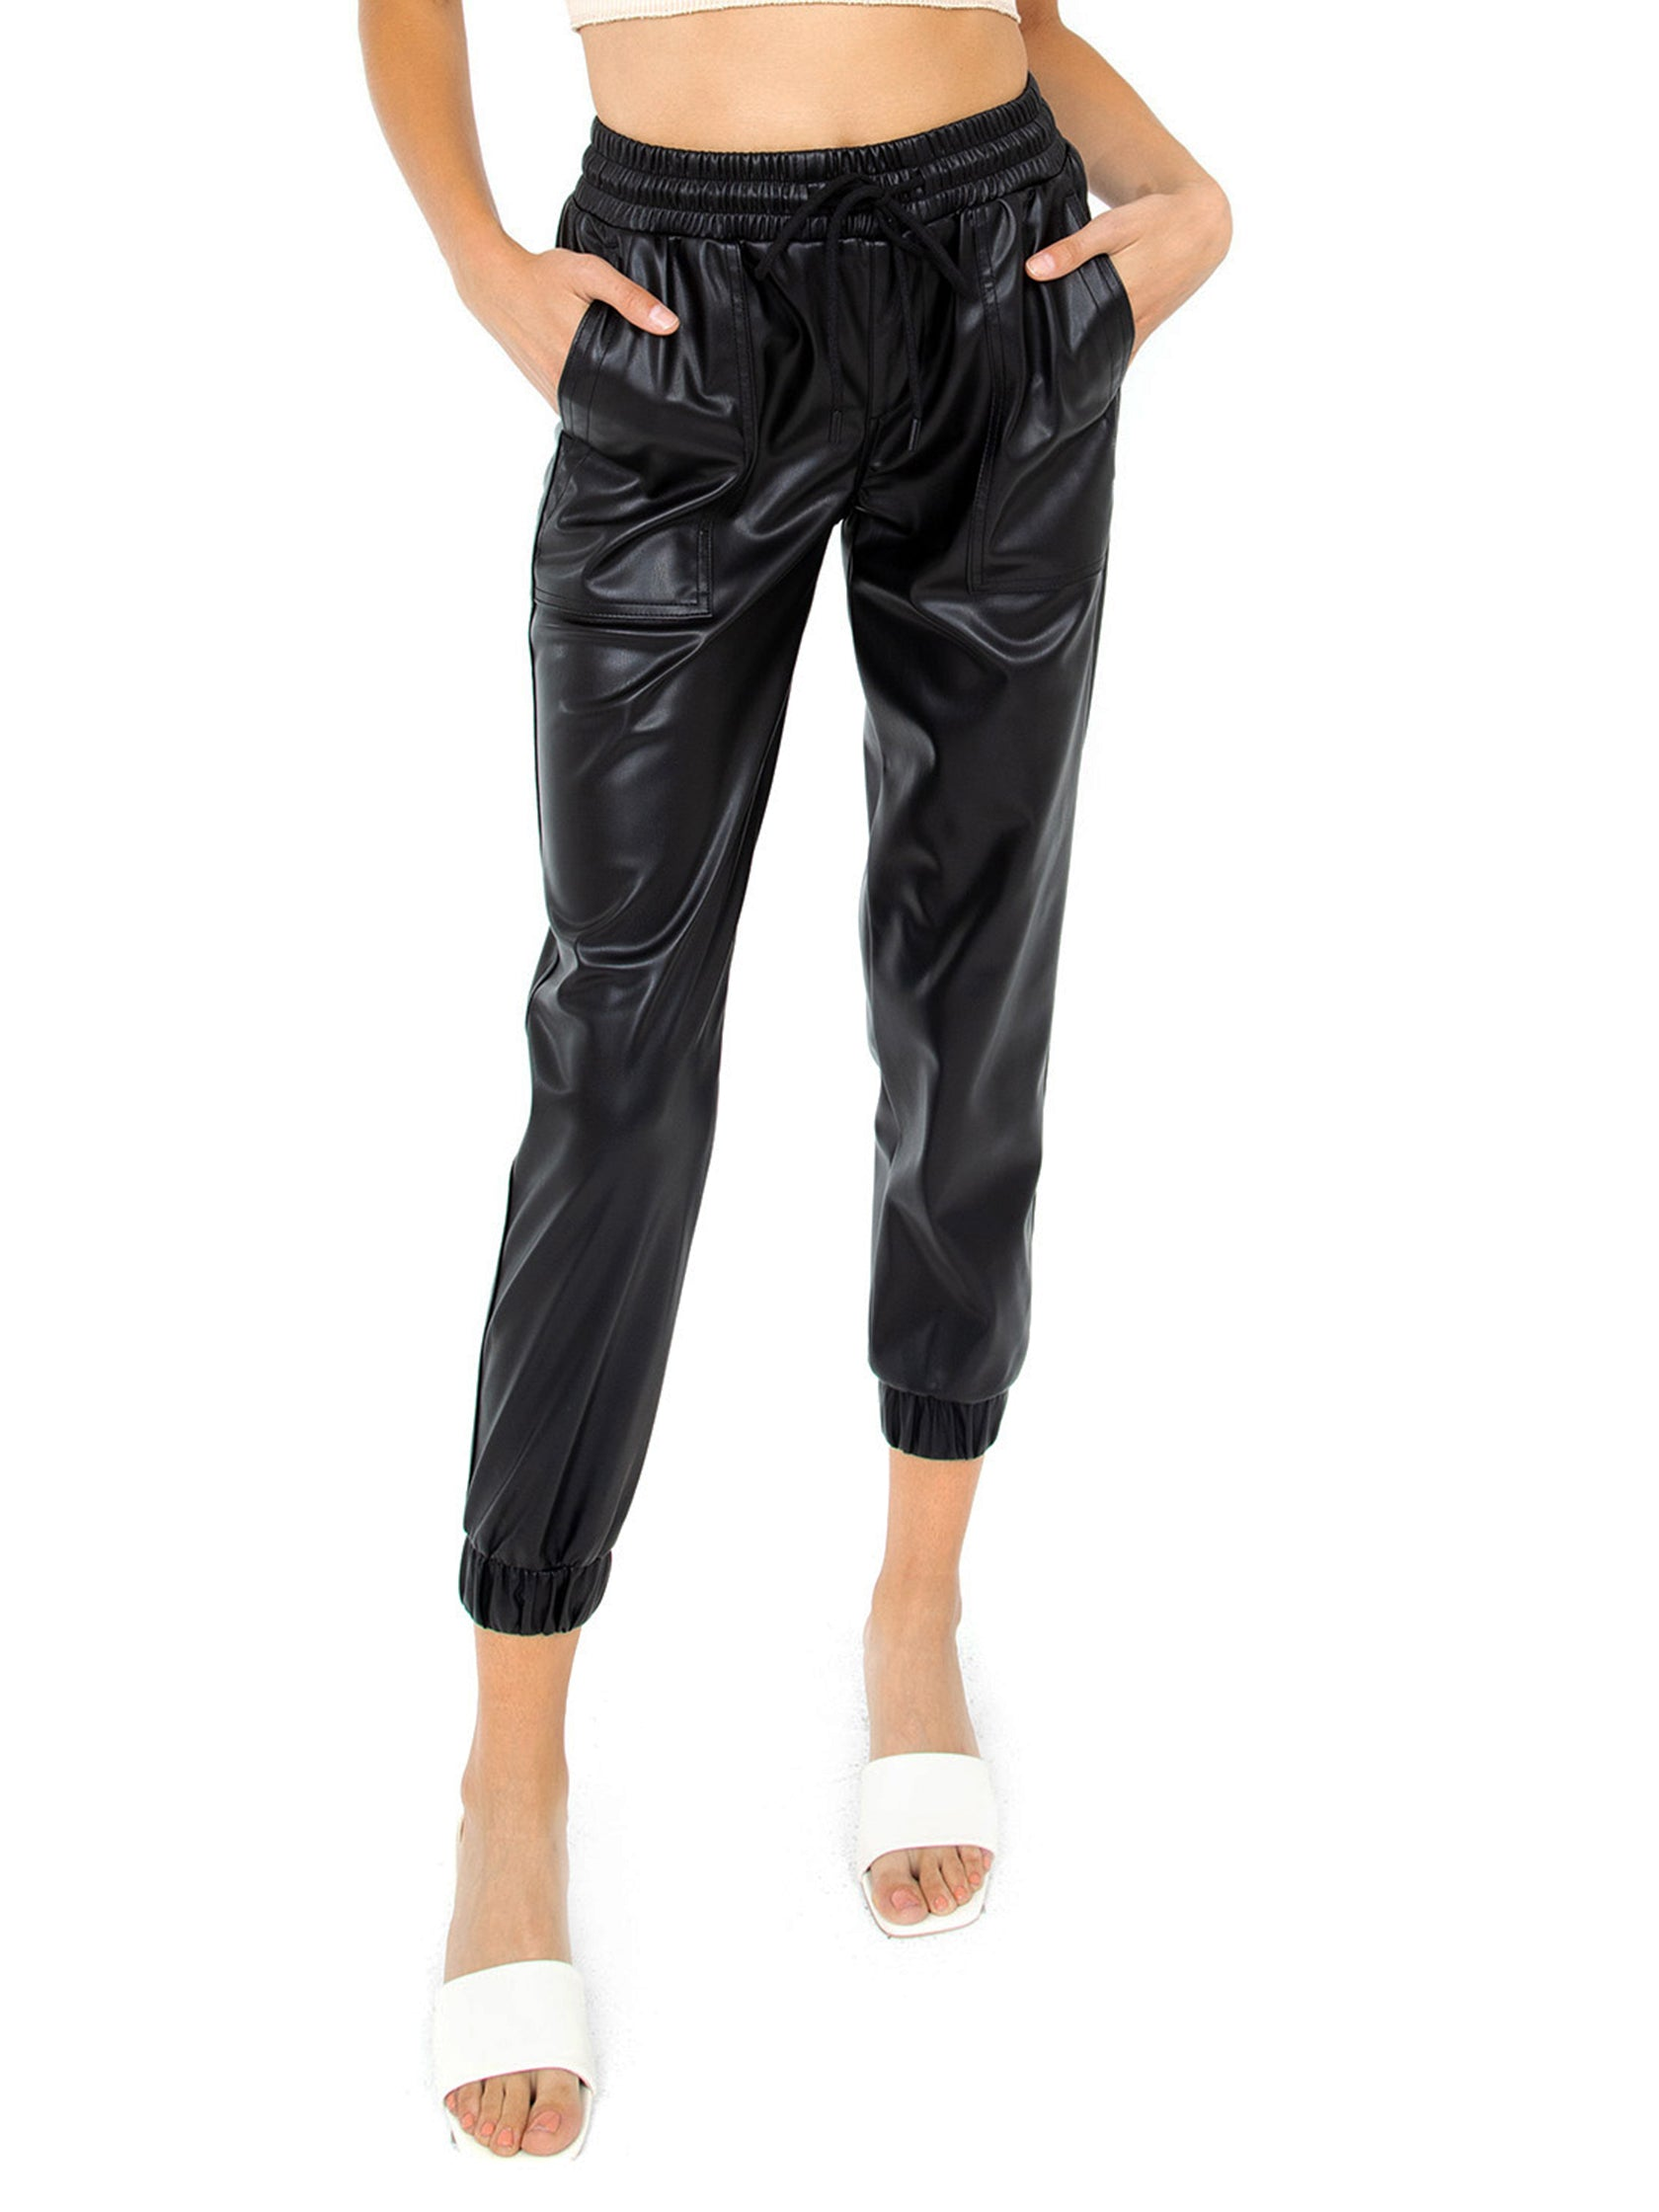 Woman wearing a pants rental from BLANKNYC called Faux Leather Jogger